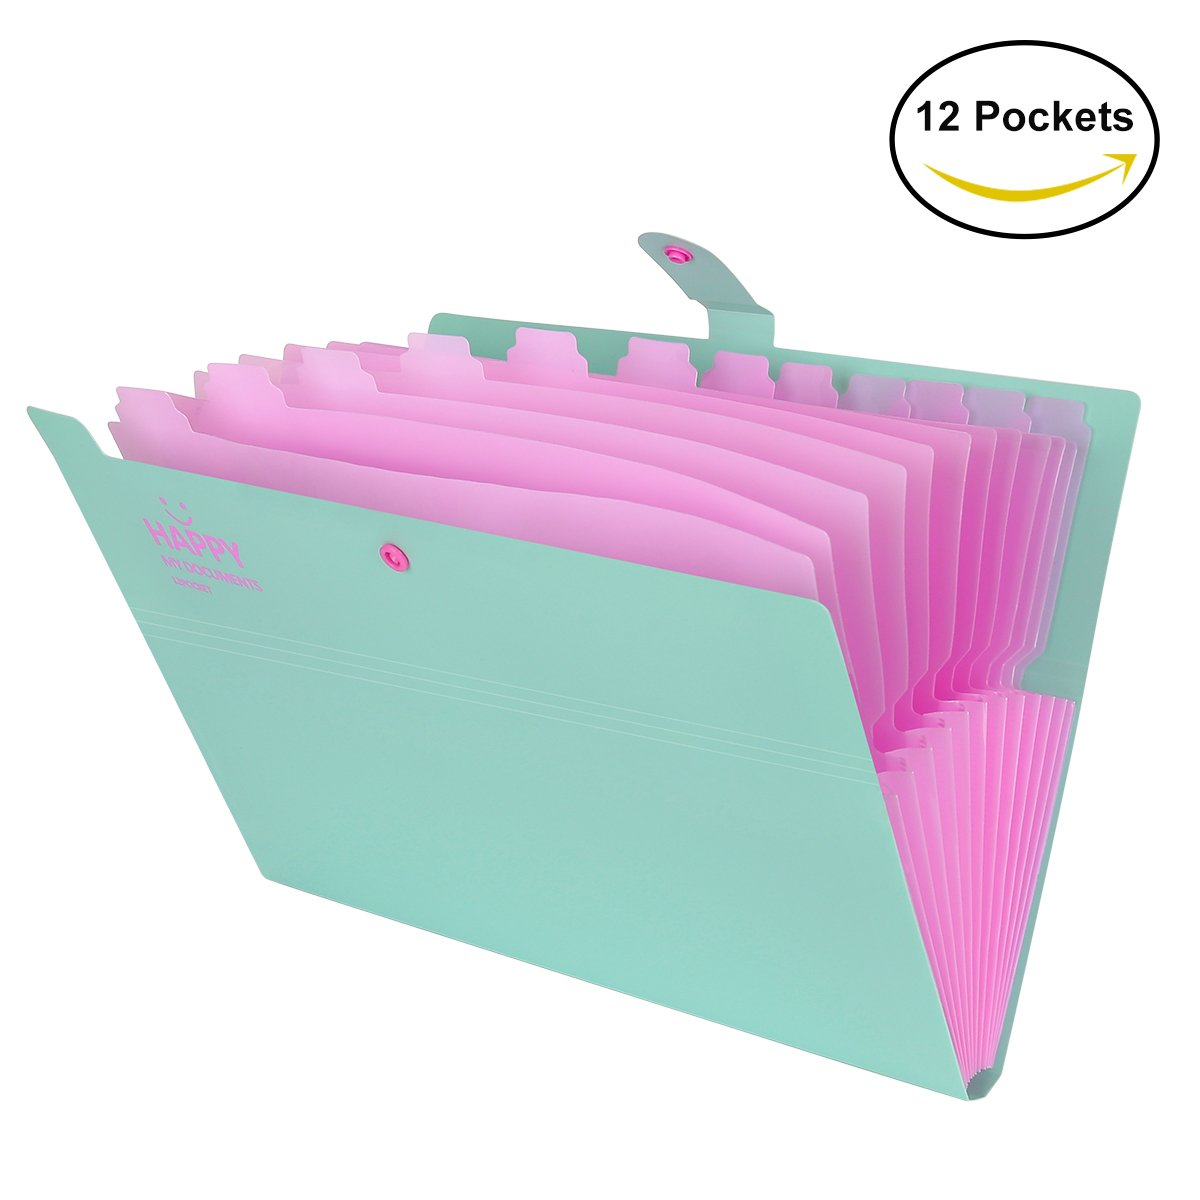 Expanding File Folder 12 Pockets with Snap Closure, Yigou Portable Accordion Document Organizer Letter A4 Paper Size [Green]